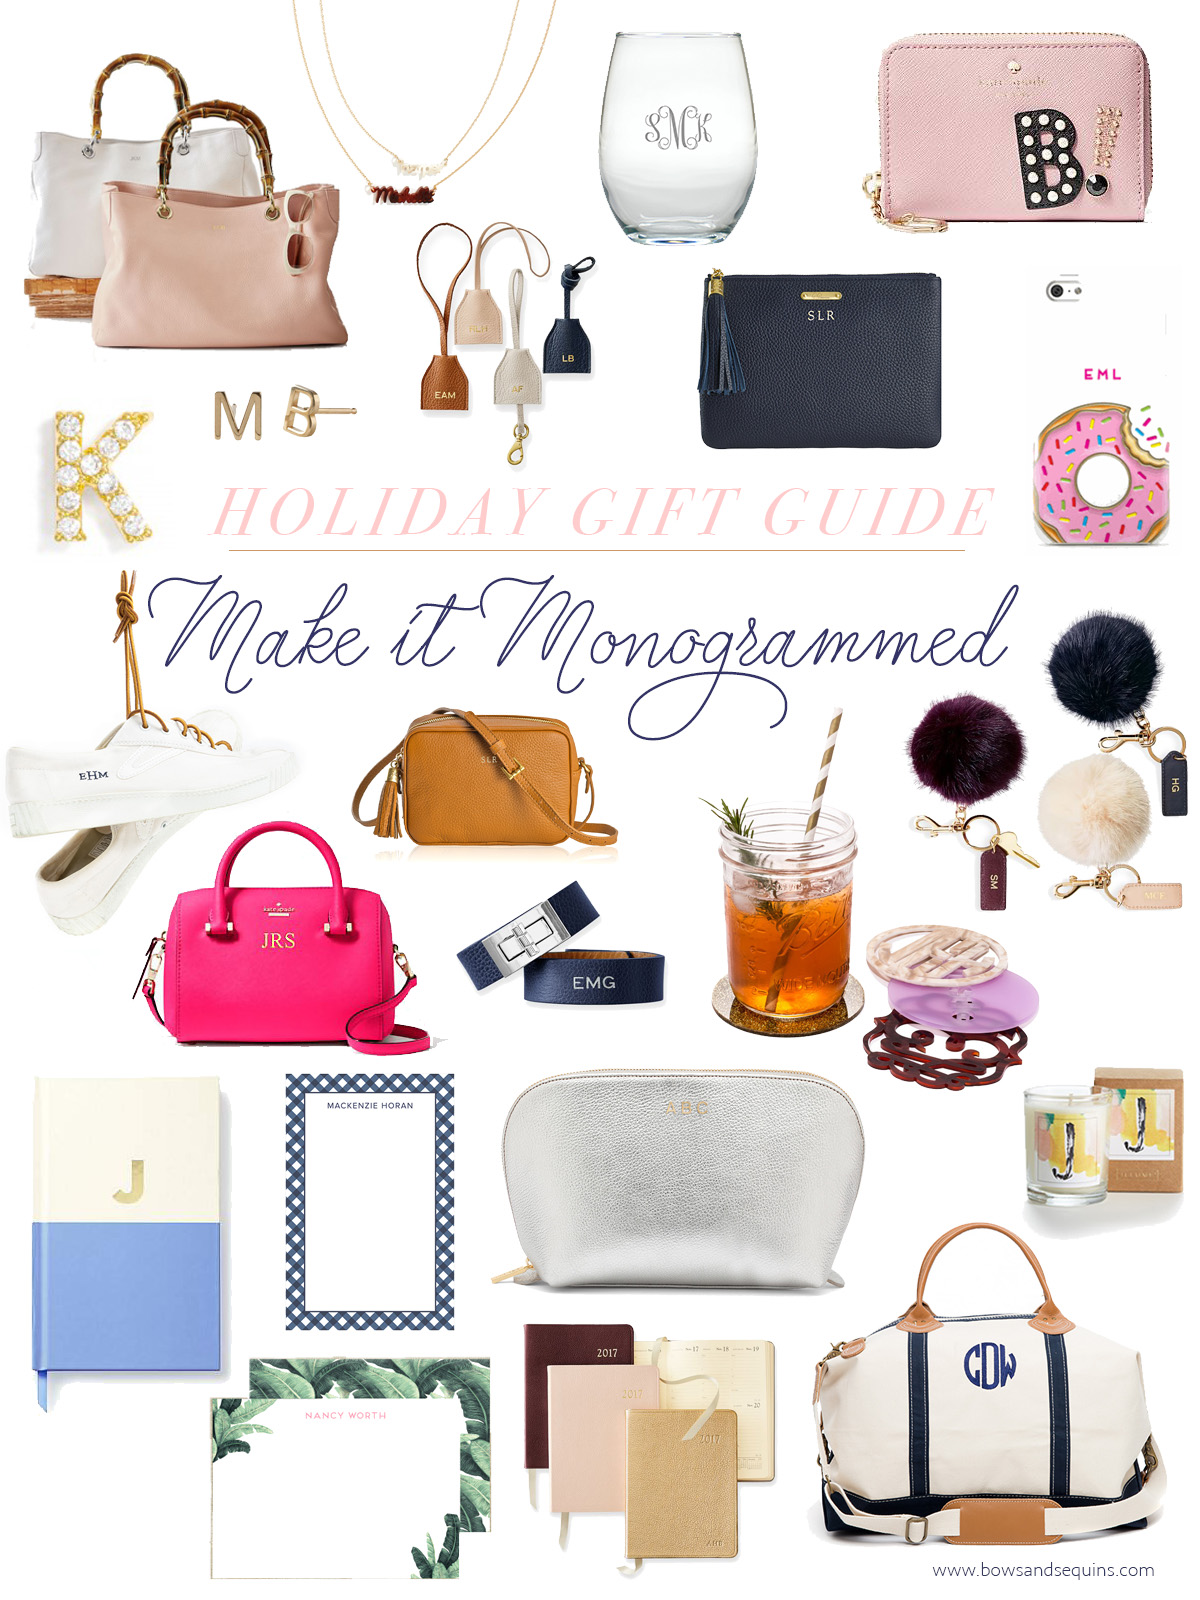 The best monogrammed and personalized holiday gifts! | 2016 Bows & Sequins Gift Guide